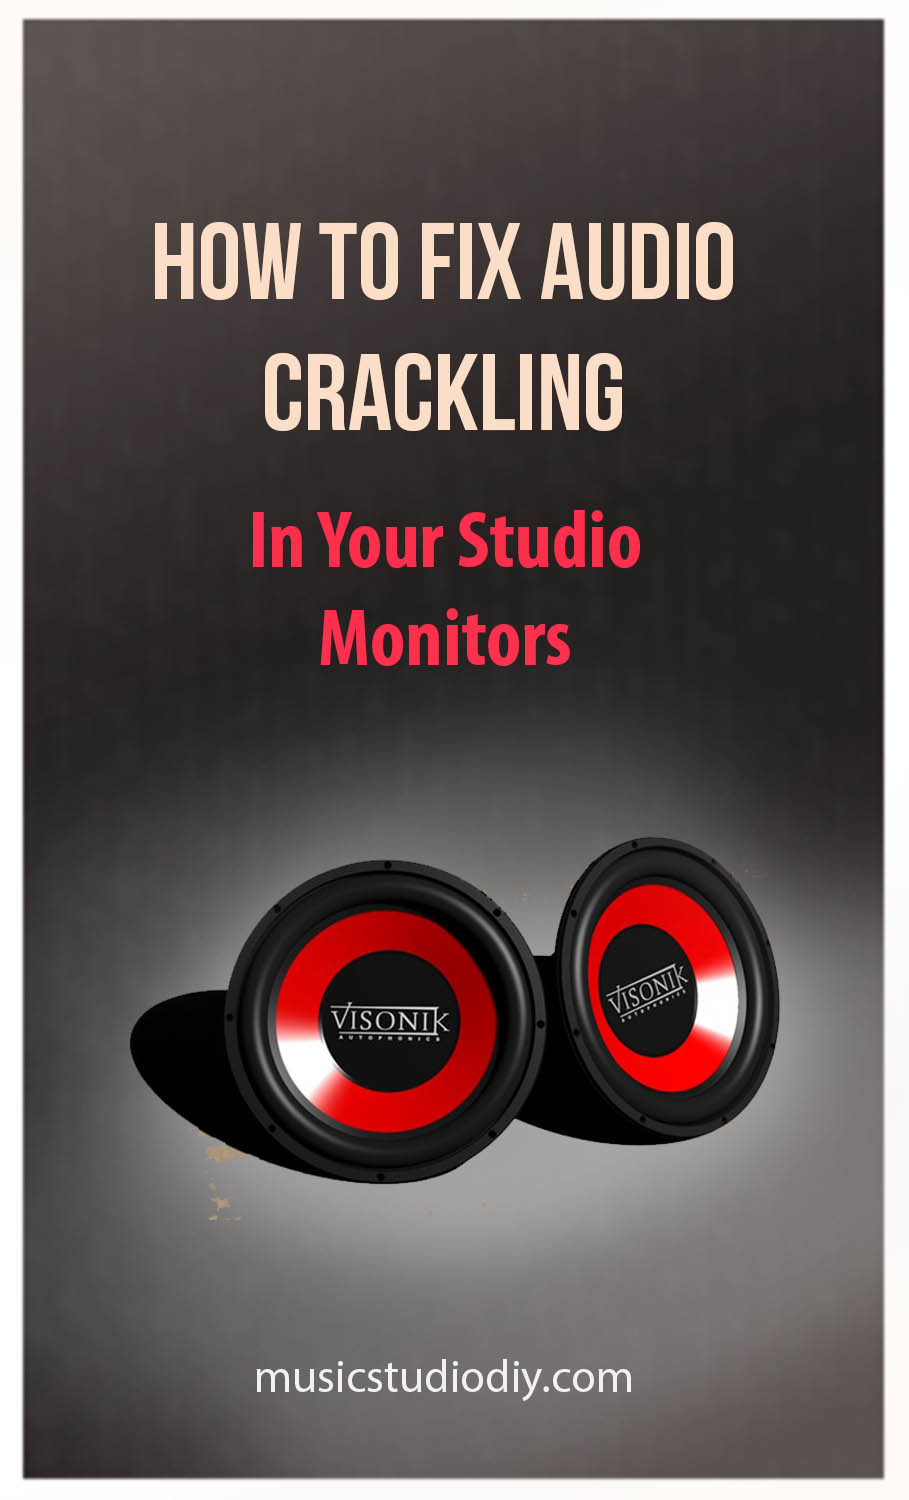 How to Fix Audio Crackling in Studio Monitors - Music Studio DIY